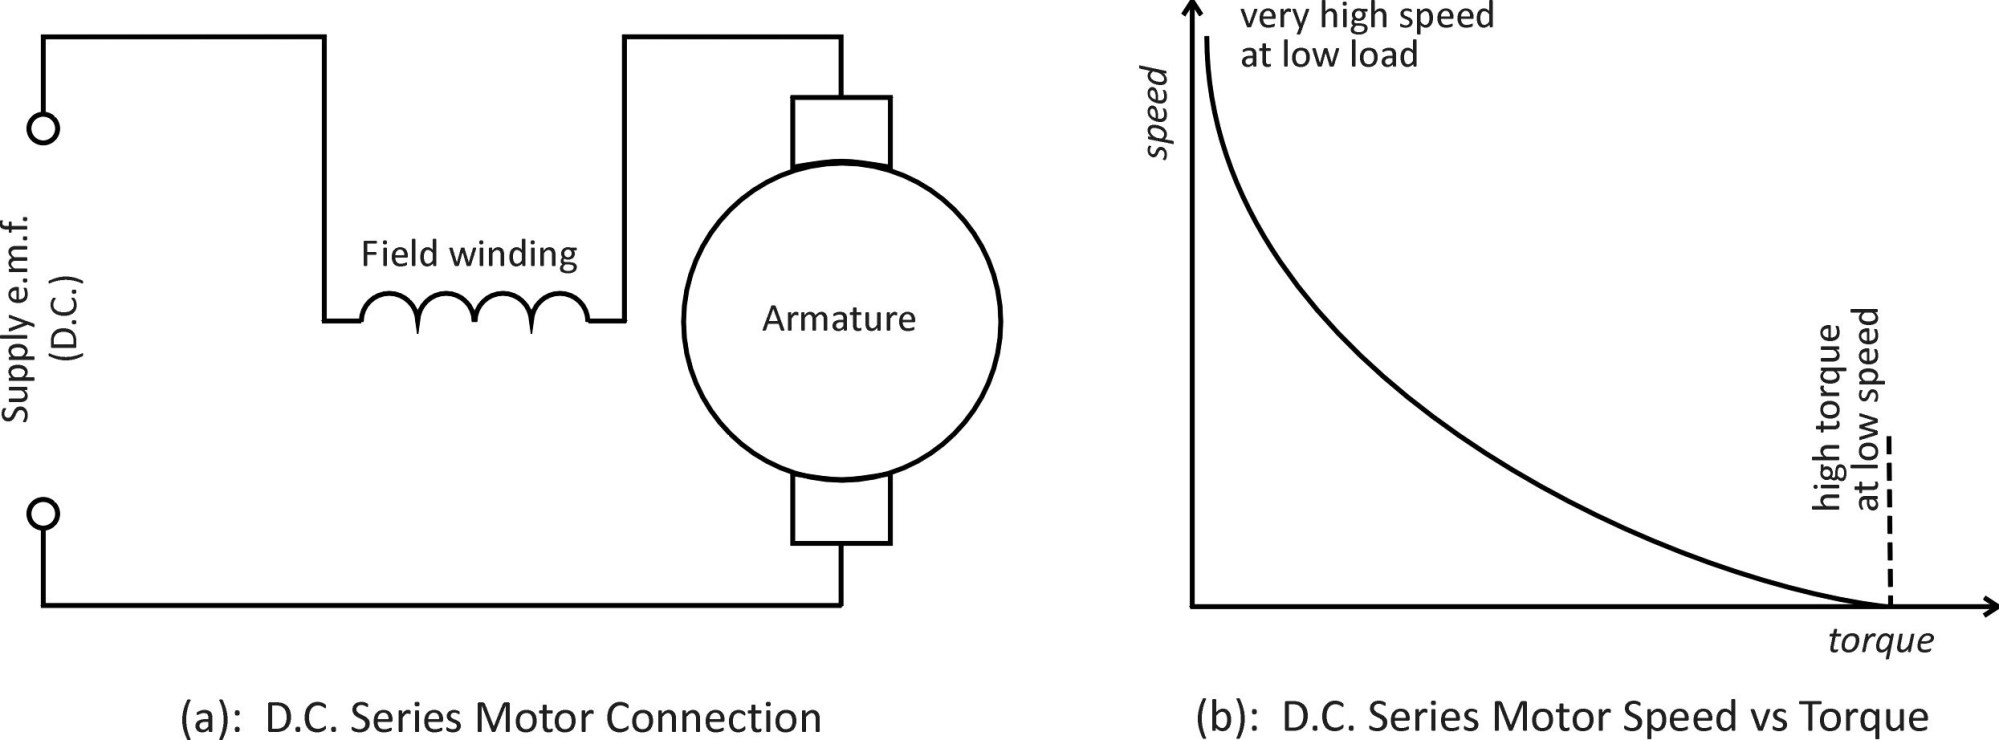 hight resolution of figure 1 circuit and speed vs torque curves for d c series motor